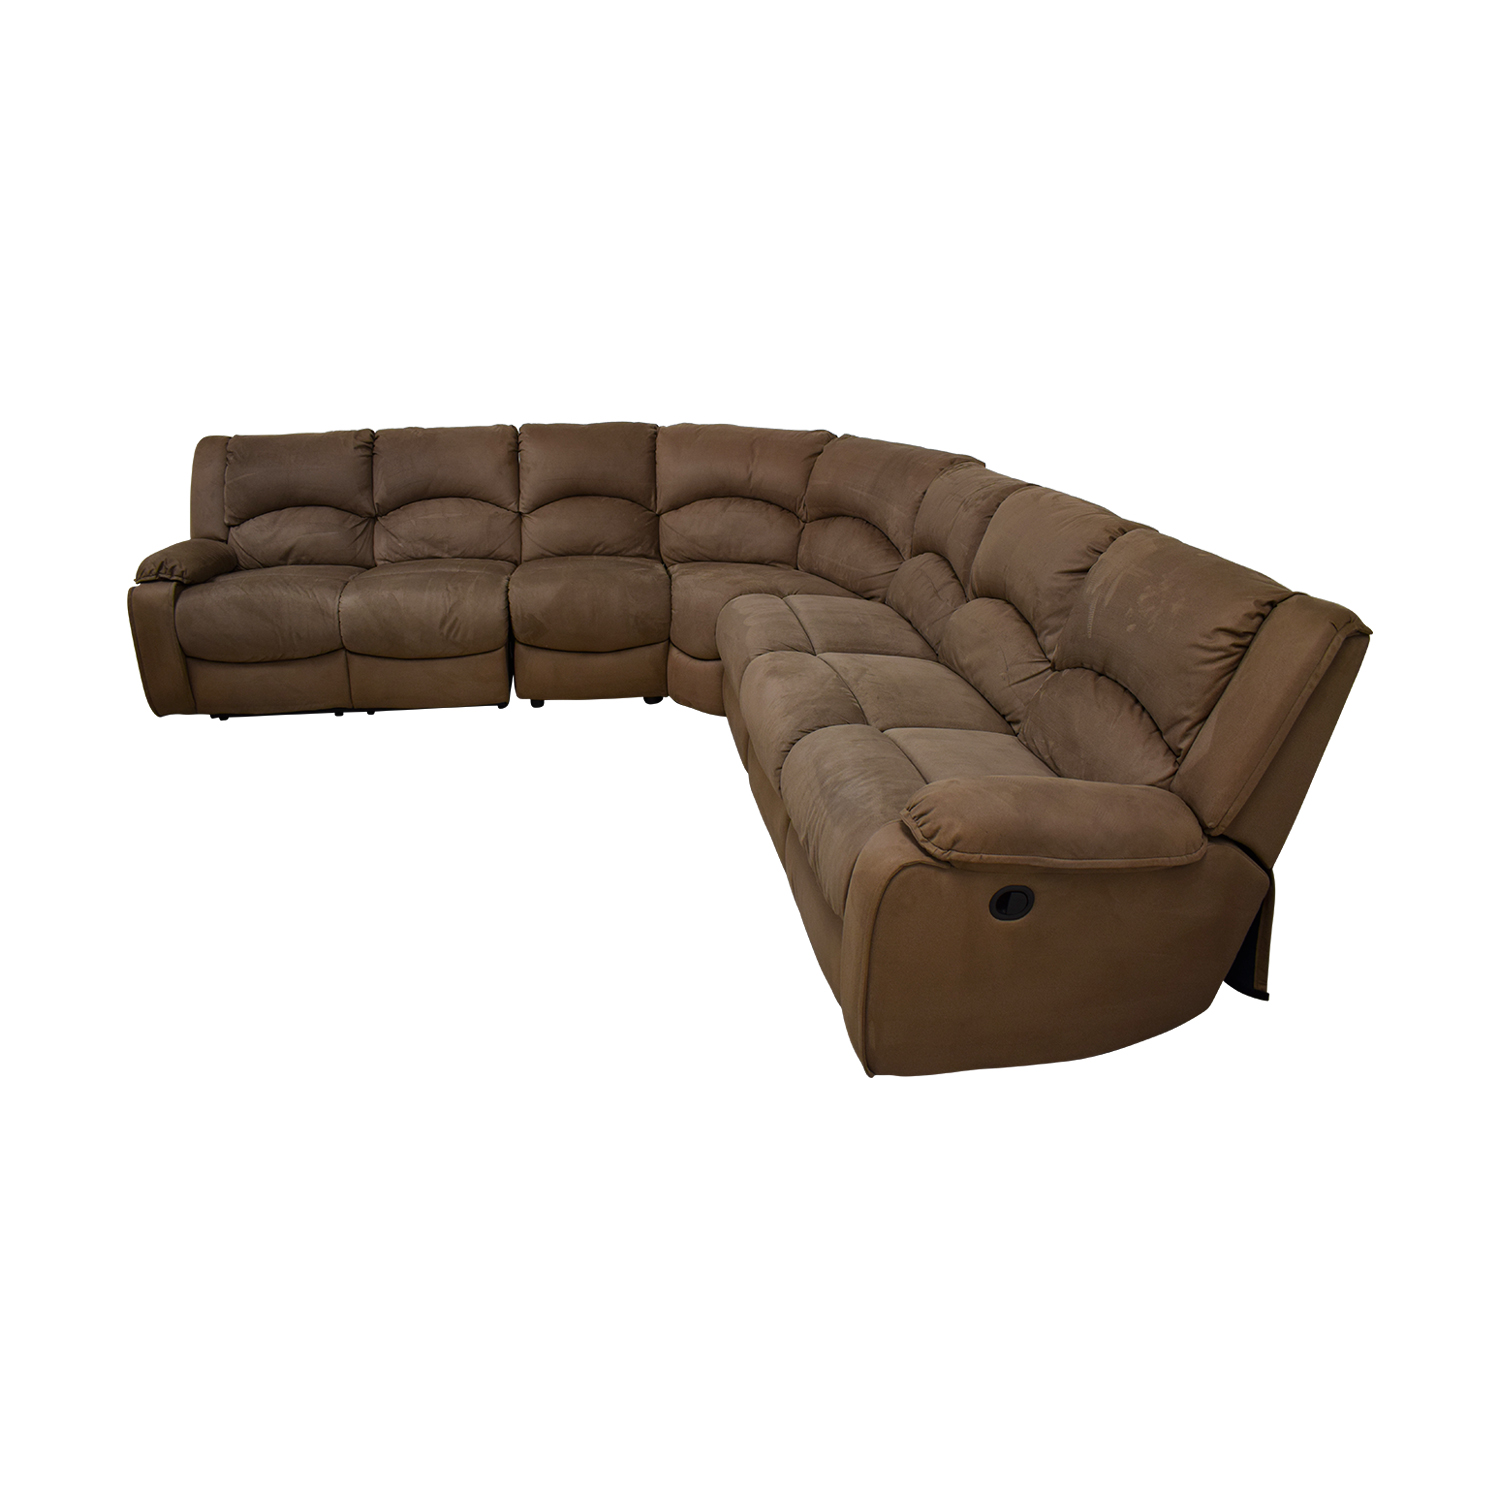 Raymour & Flanigan Raymour & Flanigan Mocha Microfiber L-Shaped Sectional discount